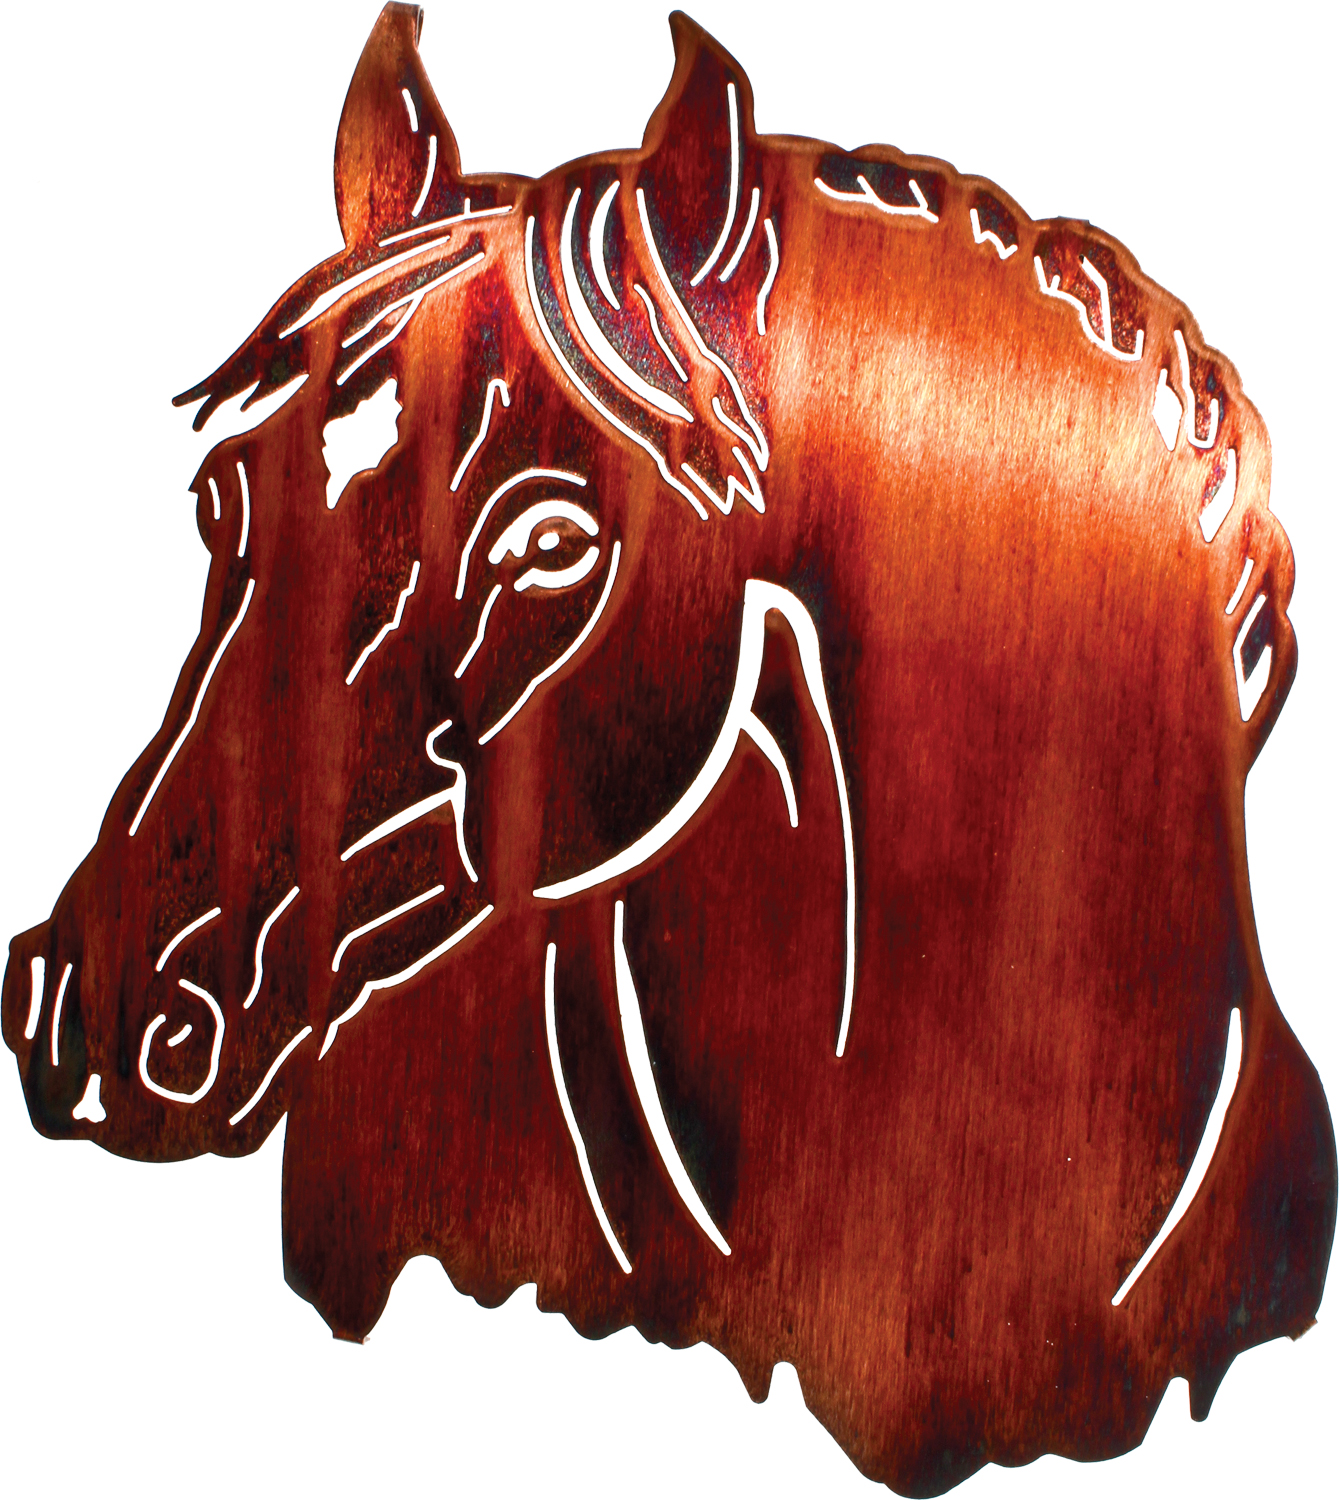 Horse metal wall art hangings hanging wall art of horses horse wall hangings horse wall art wall art of horses wall hangings of horses mares stallions colts and fillies rearing horses running horses amipublicfo Gallery